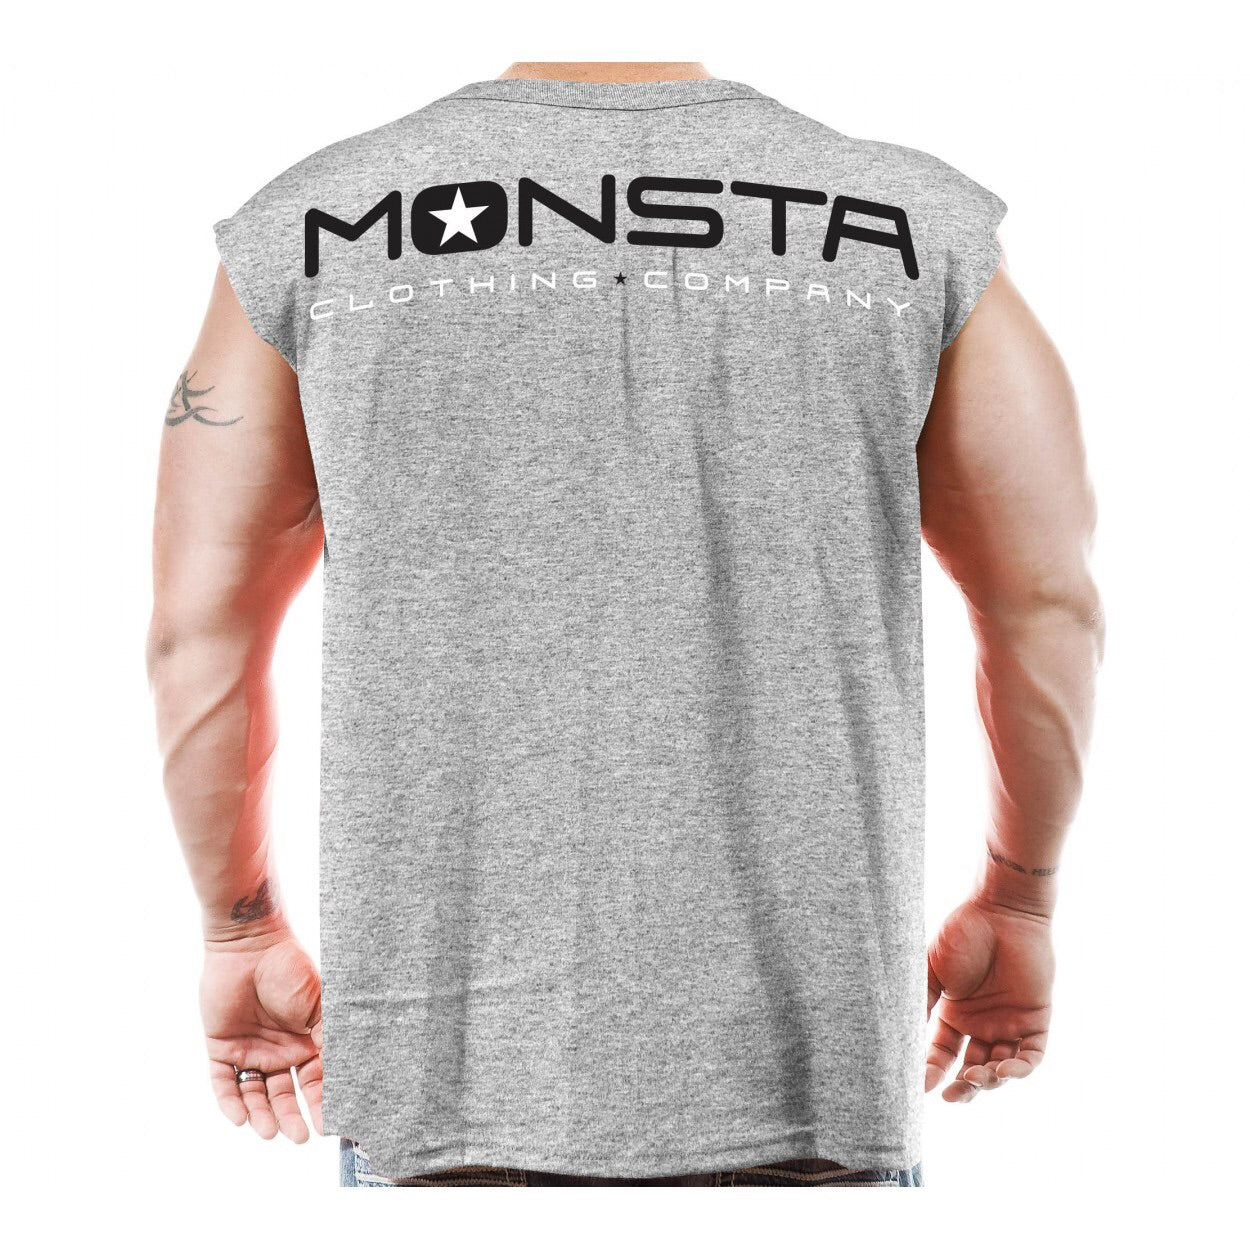 SLEEVELESS TANK: CROSS TRAINING SLEEVELESS TANK -175 - Monsta Clothing Australia